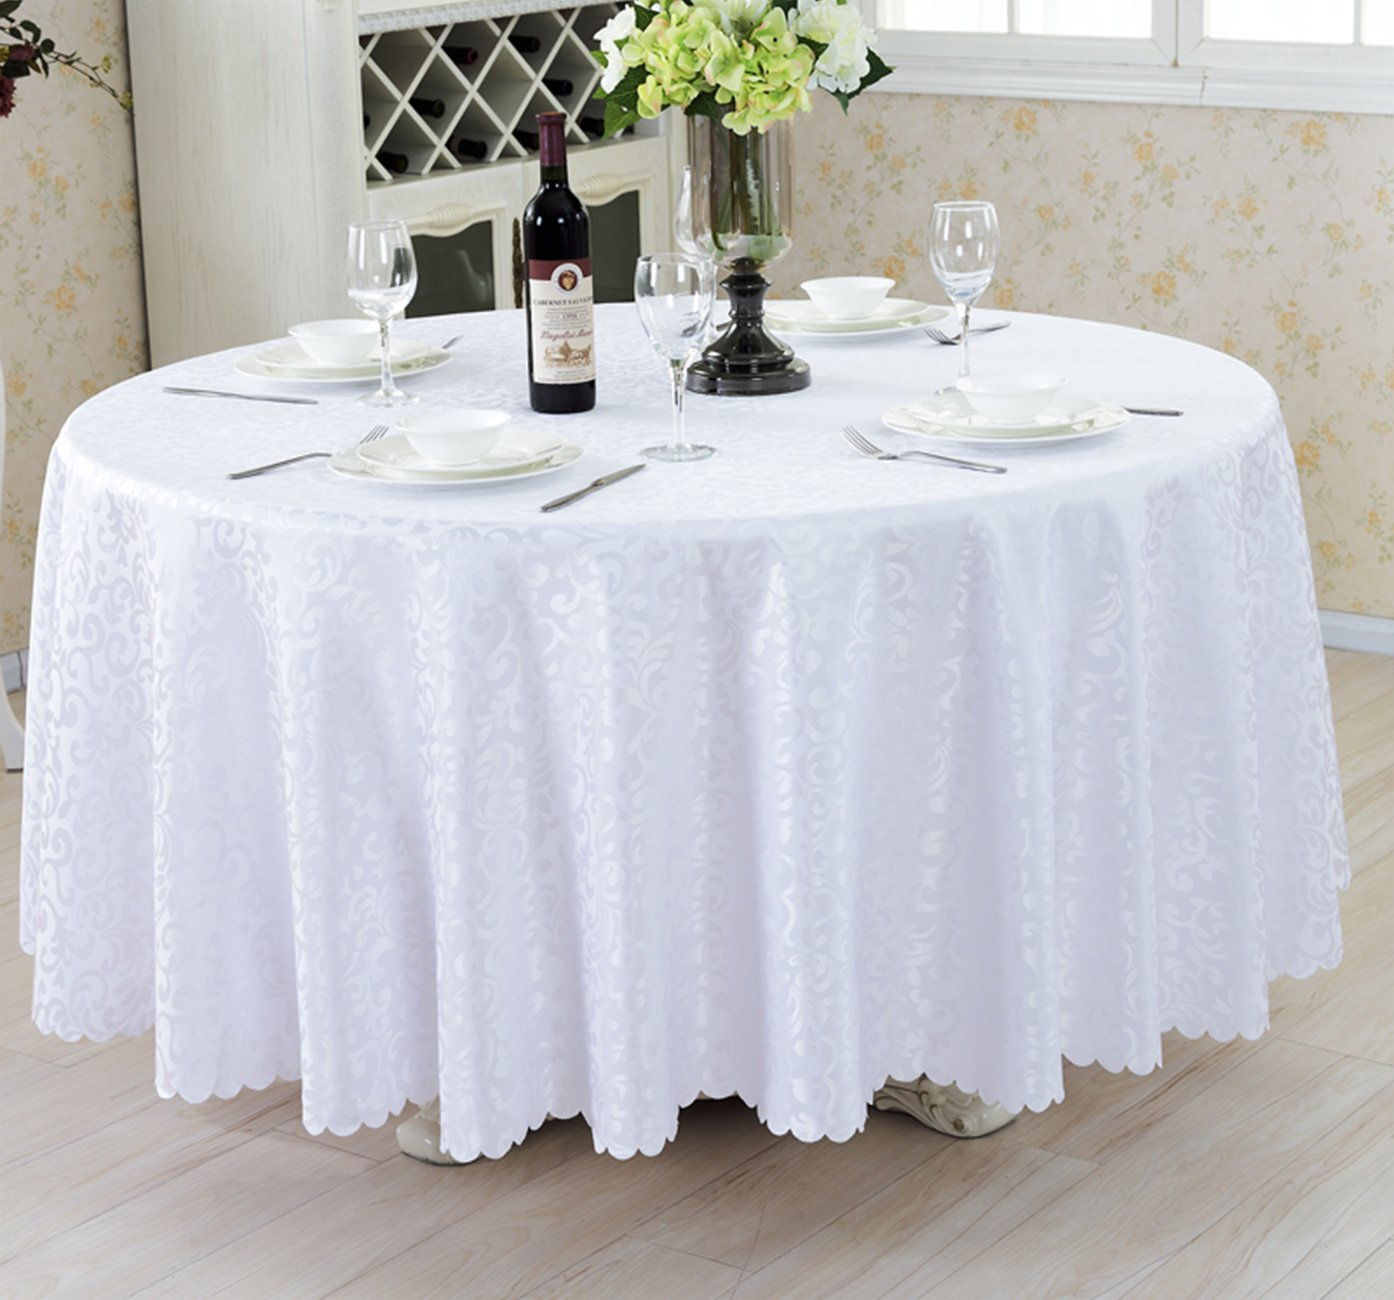 LINENLUX Luxurious Round Tablecloths for Wedding,Meeting,Hotel,Restaurant,Party